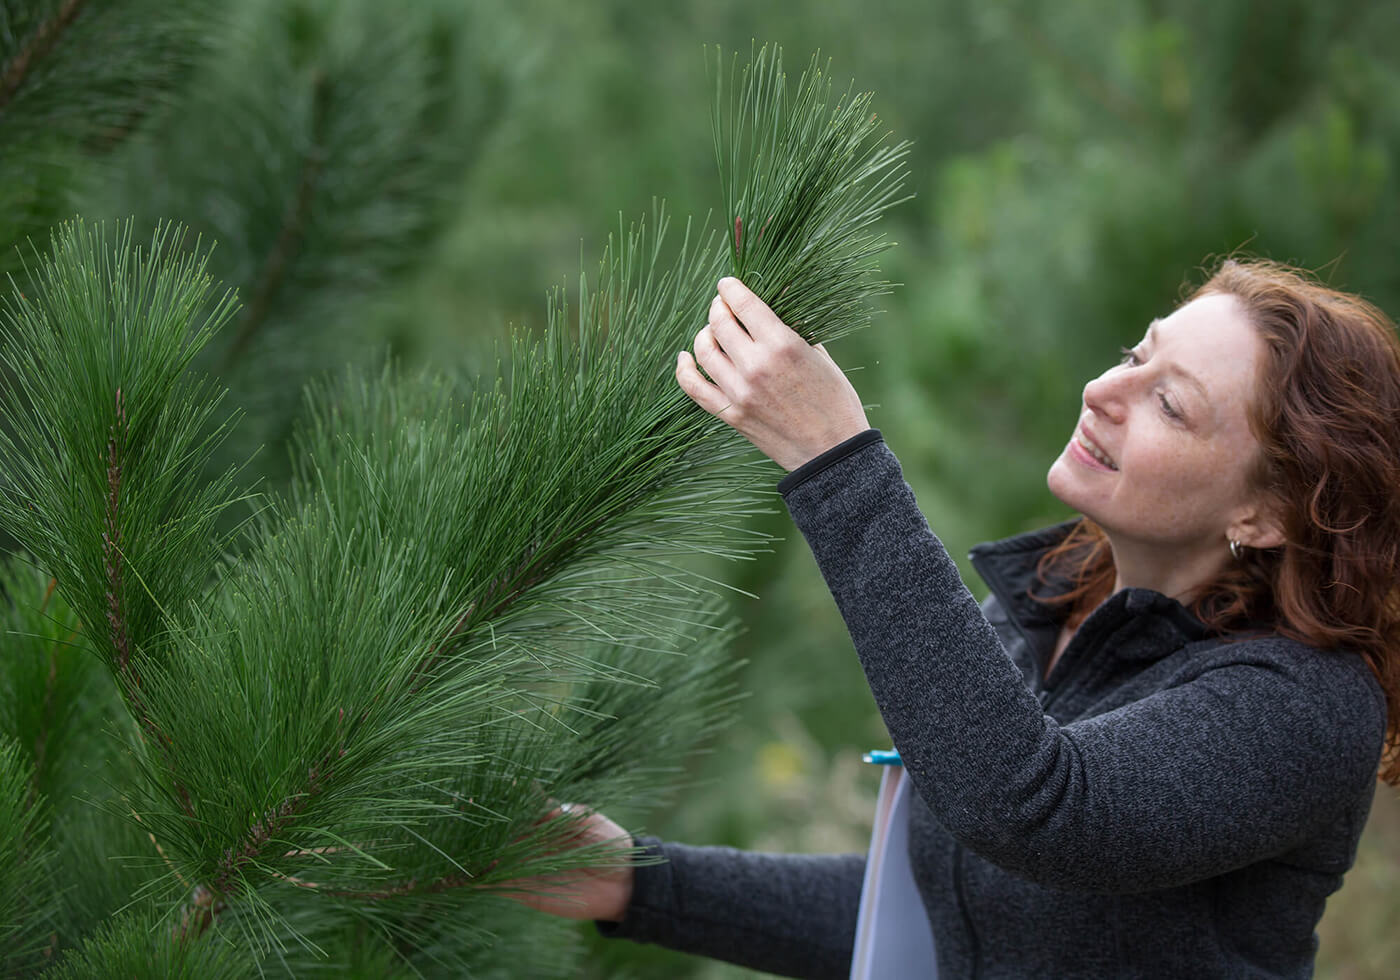 Cheryl Quinton examining the pine tree growth